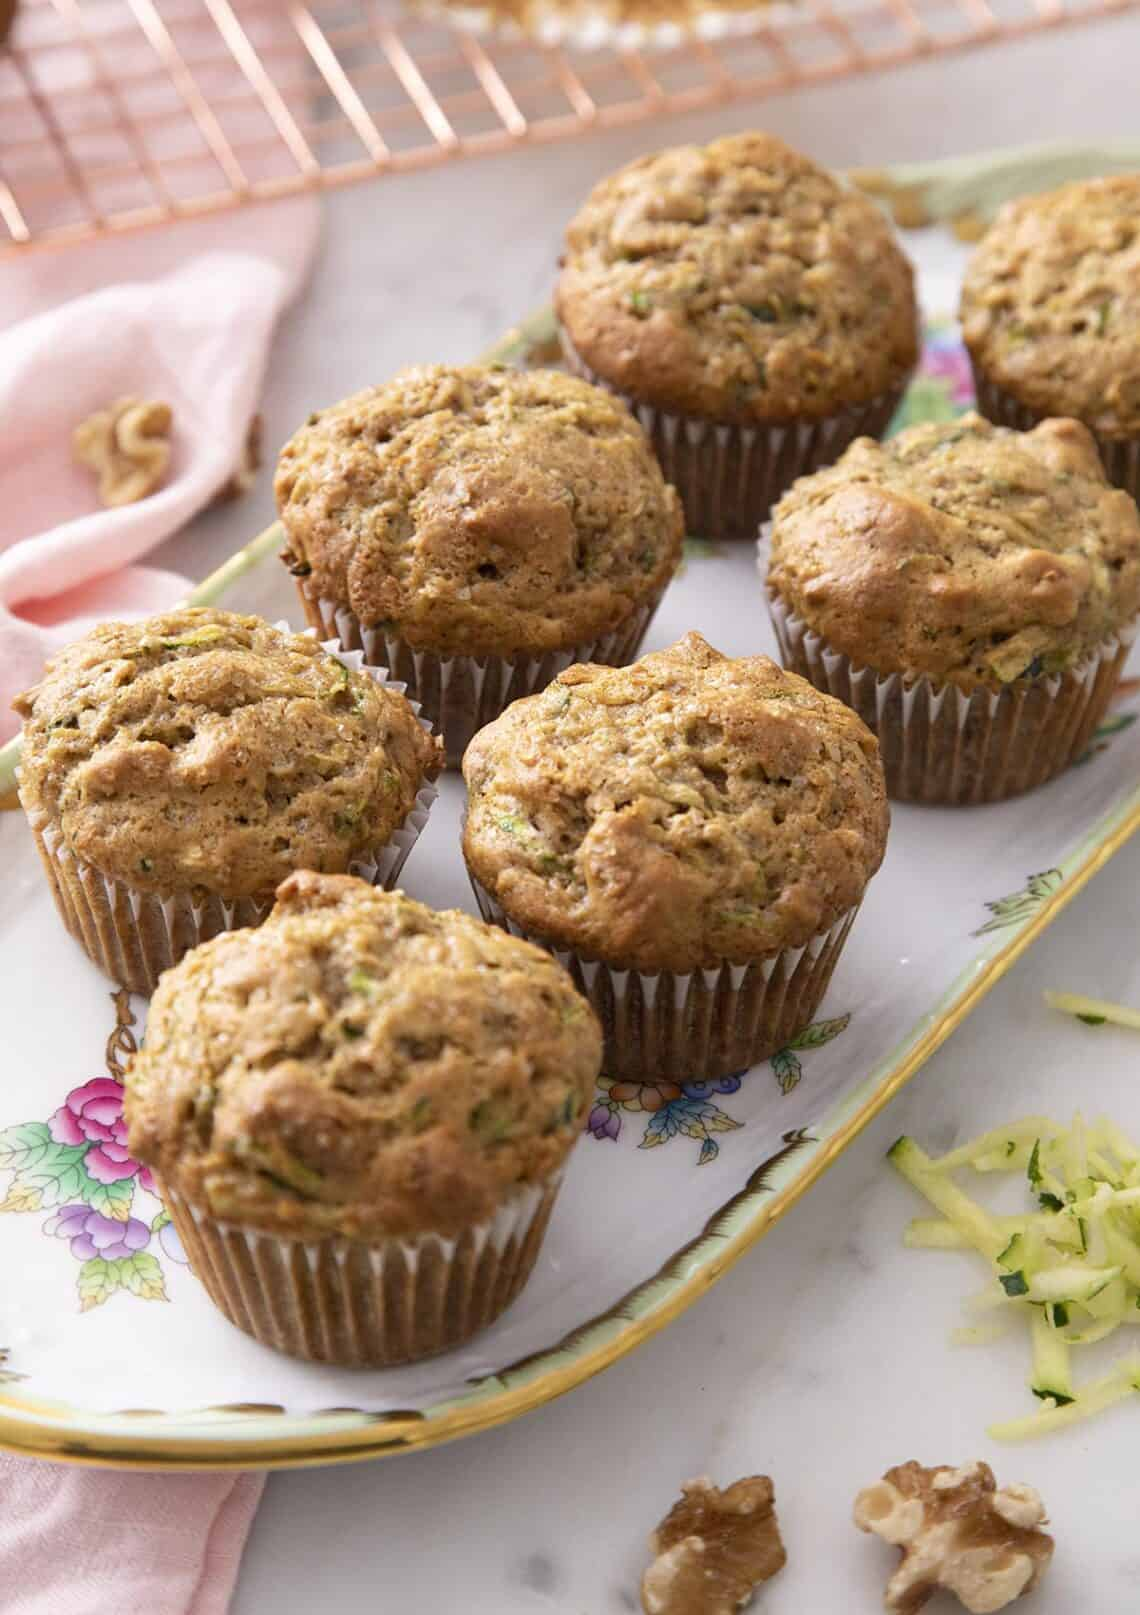 Zucchini muffins with toasted walnuts on a serving tray.